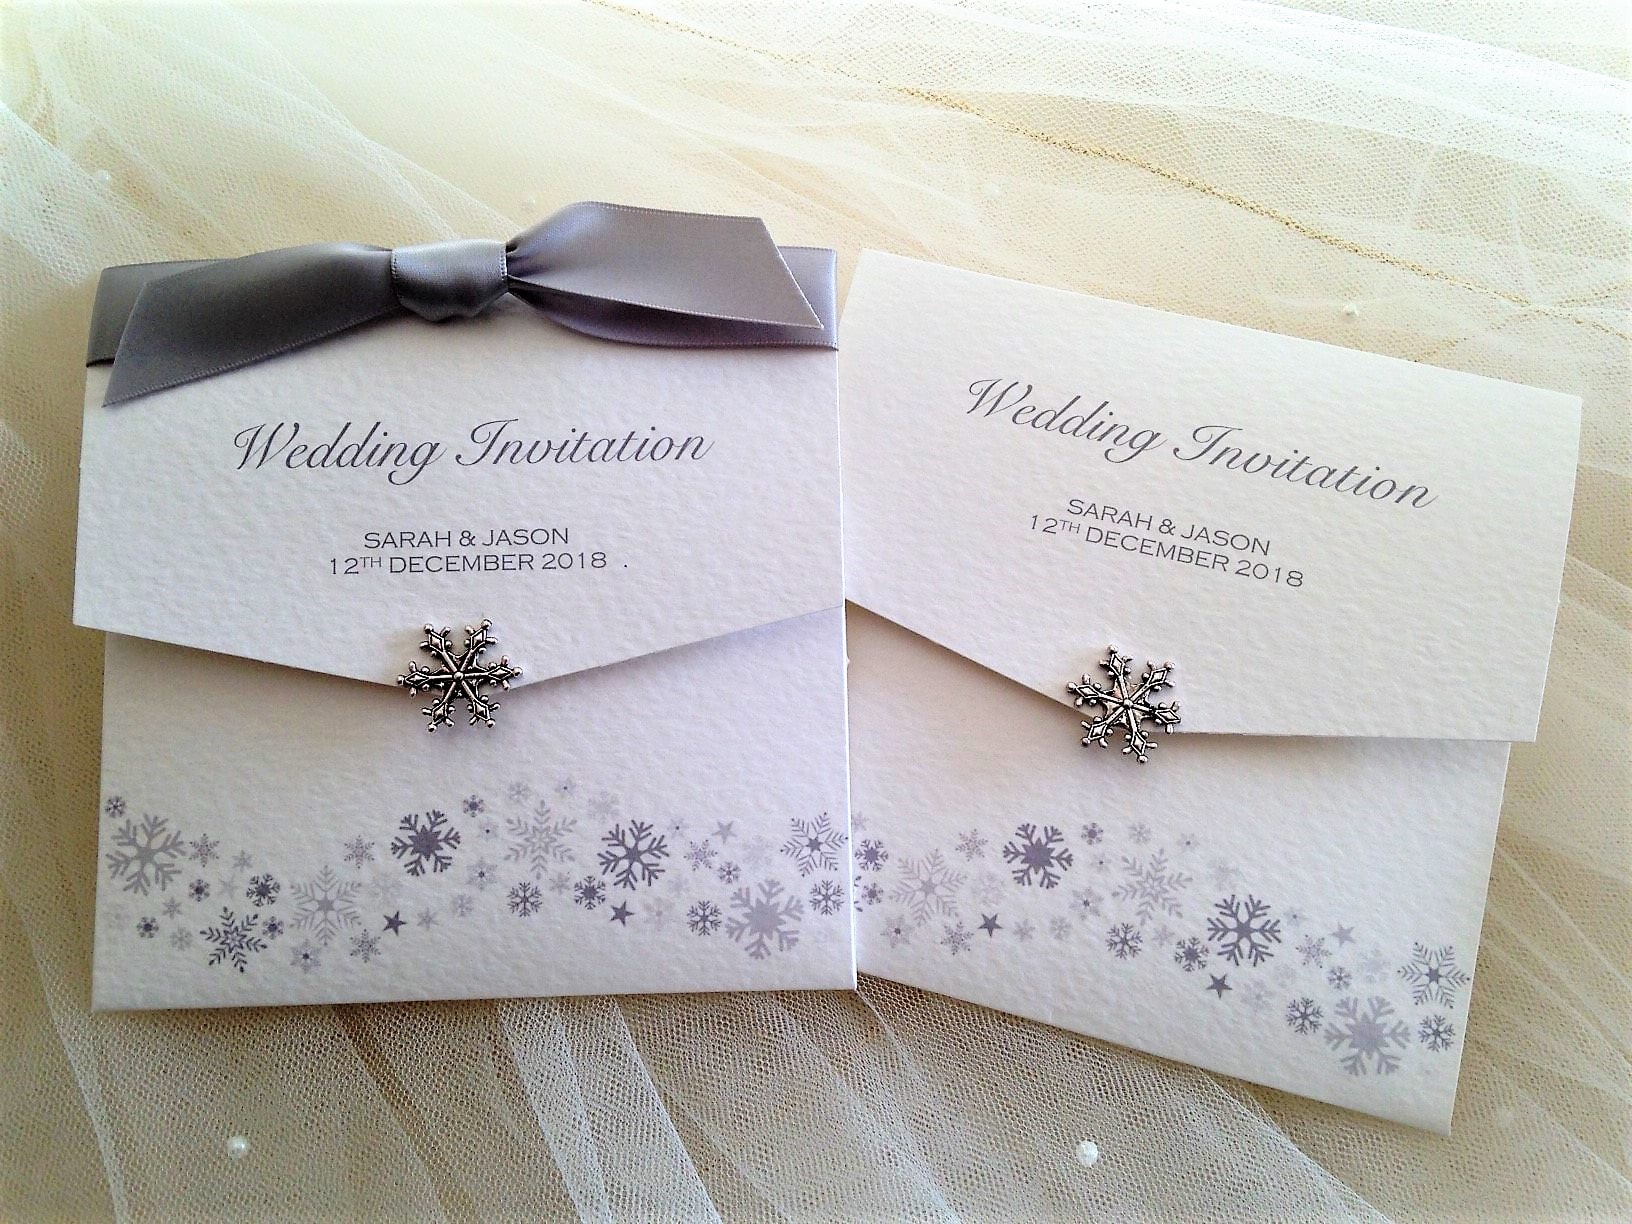 Silver Snowflake Wedding Invitations - Daisy Chain Invites